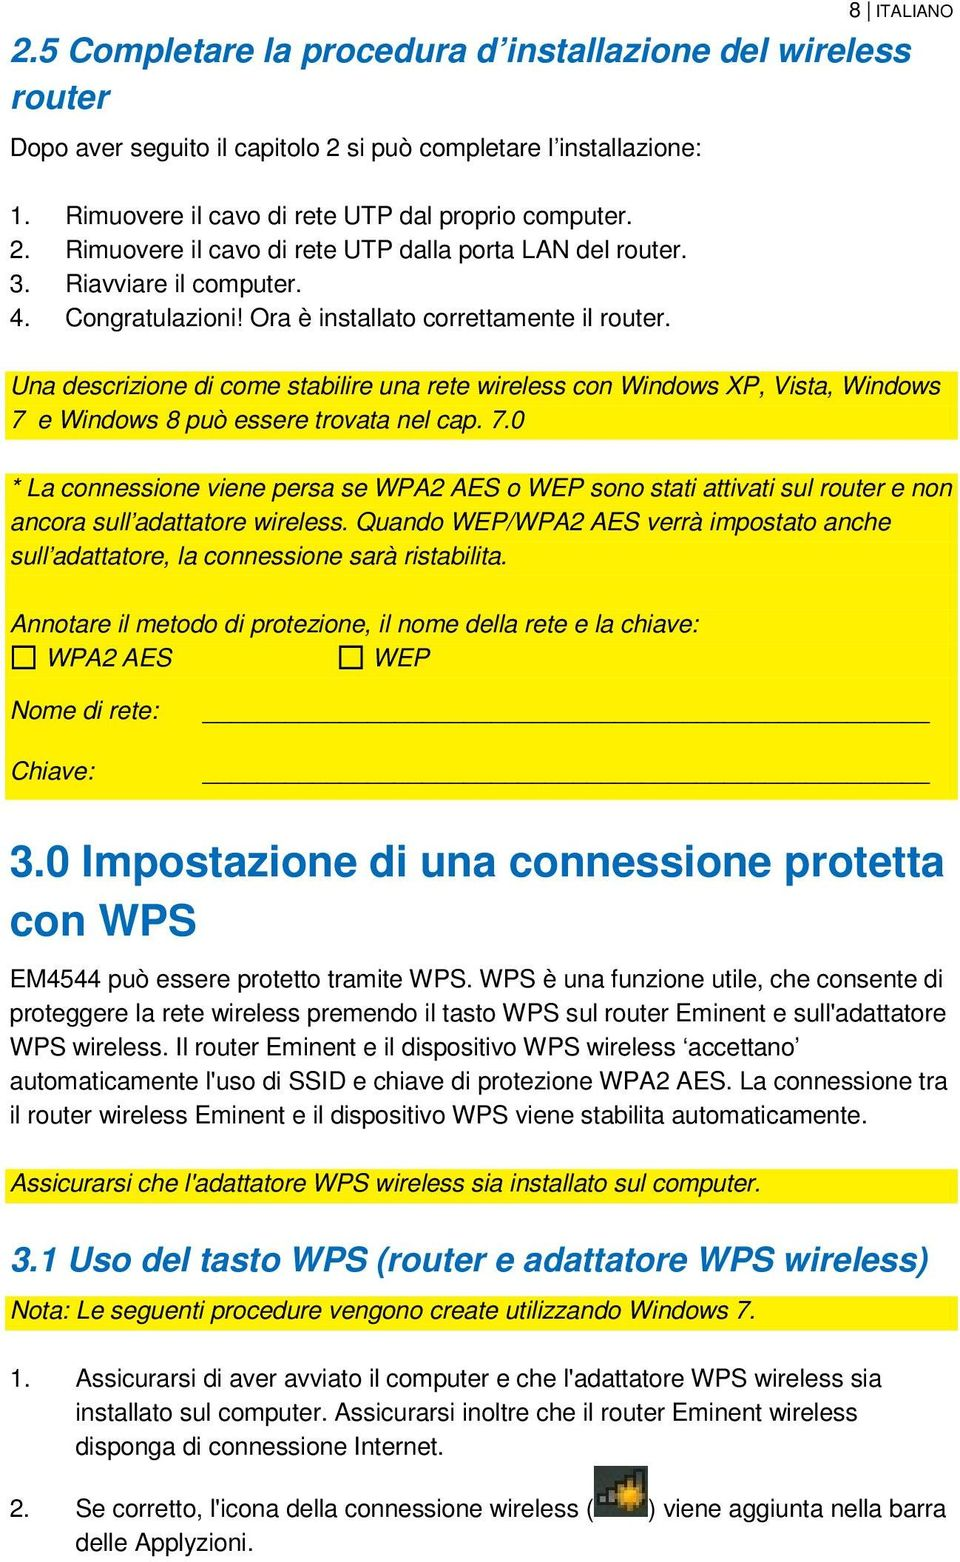 Una descrizione di come stabilire una rete wireless con Windows XP, Vista, Windows 7